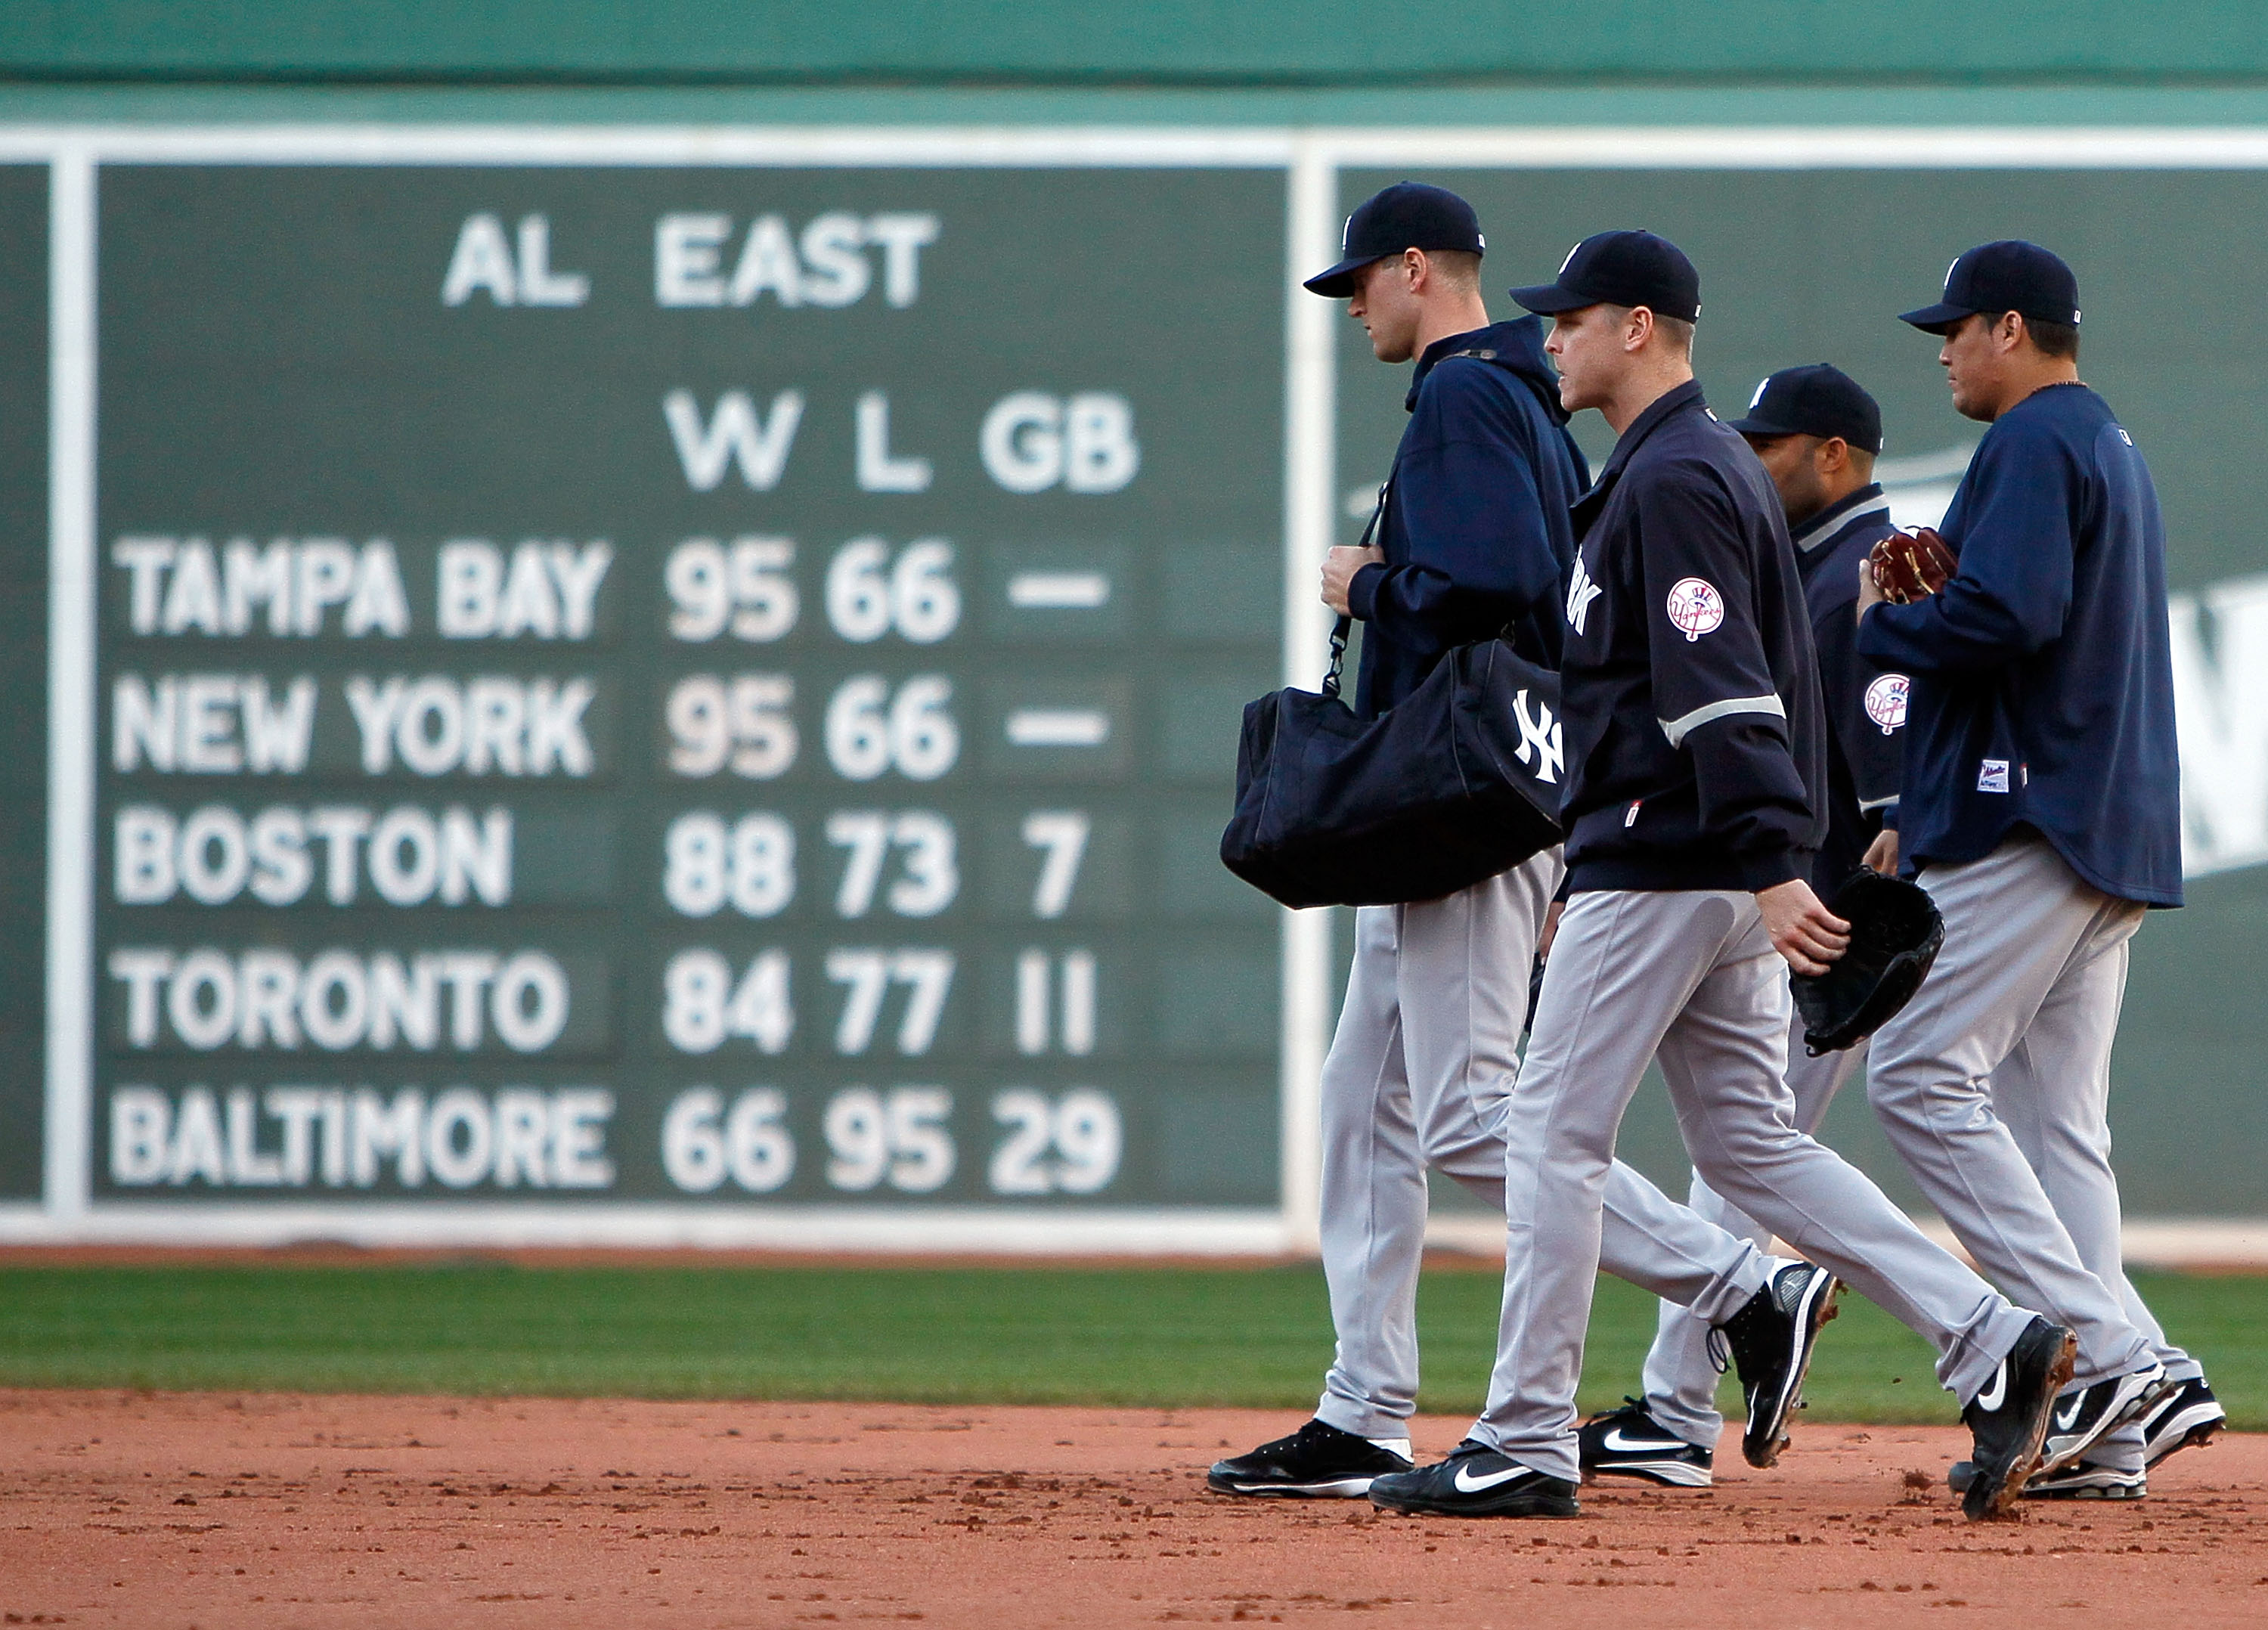 58a1d642d1e BOSTON - OCTOBER 3  Members of the New York Yankees bullpen walk off of the